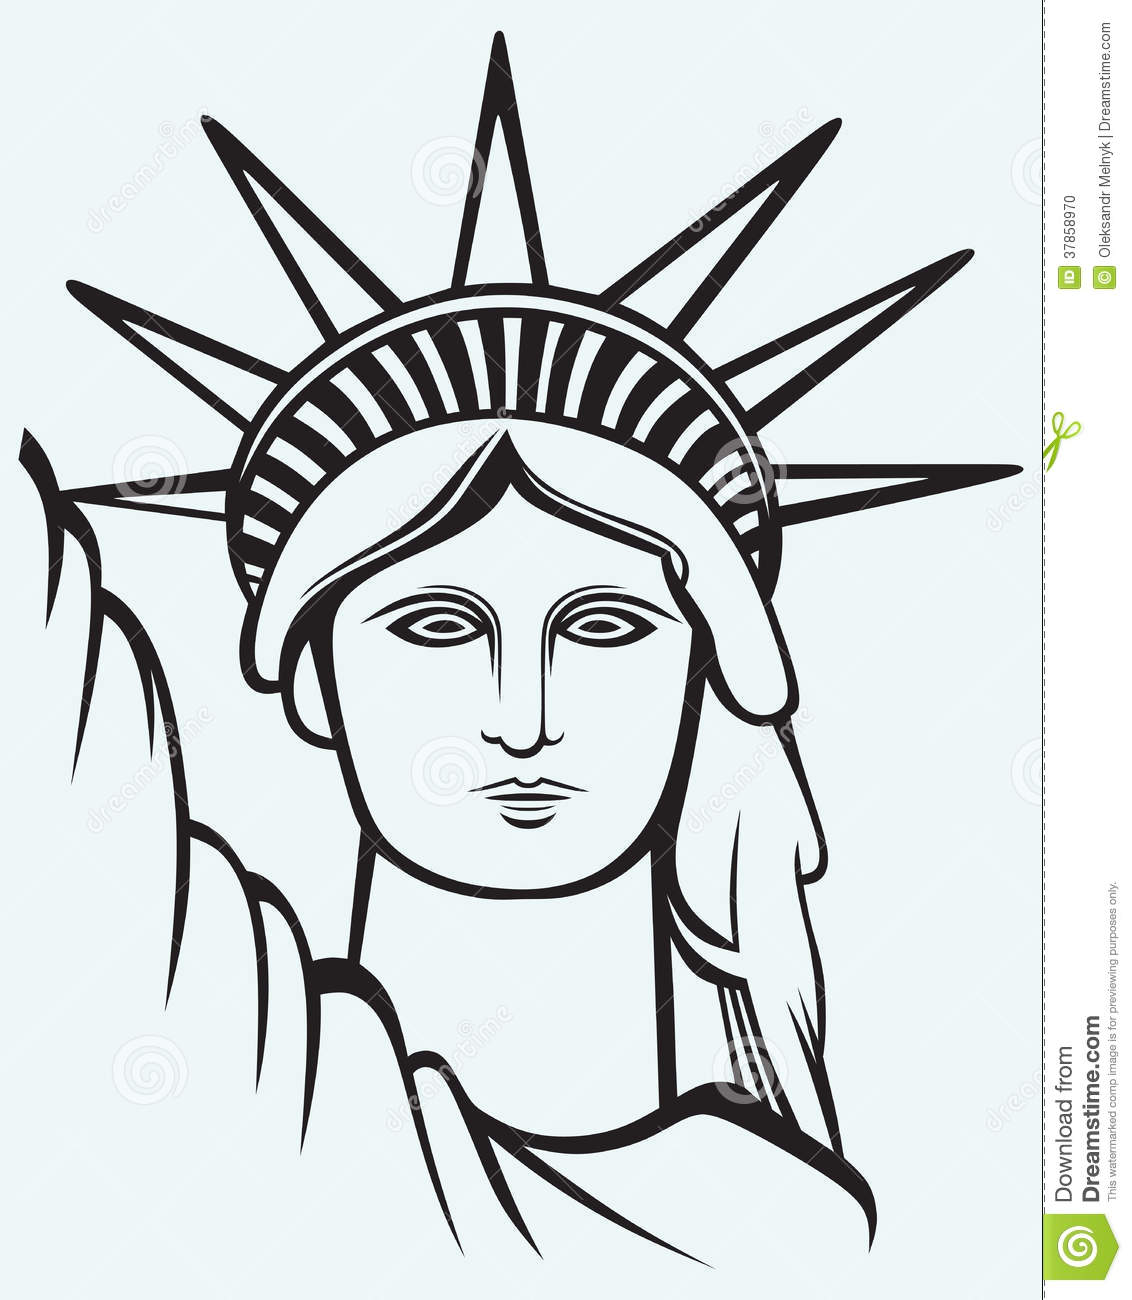 Statue Of Liberty By Oleksandr Melnyk Via Dreamstime